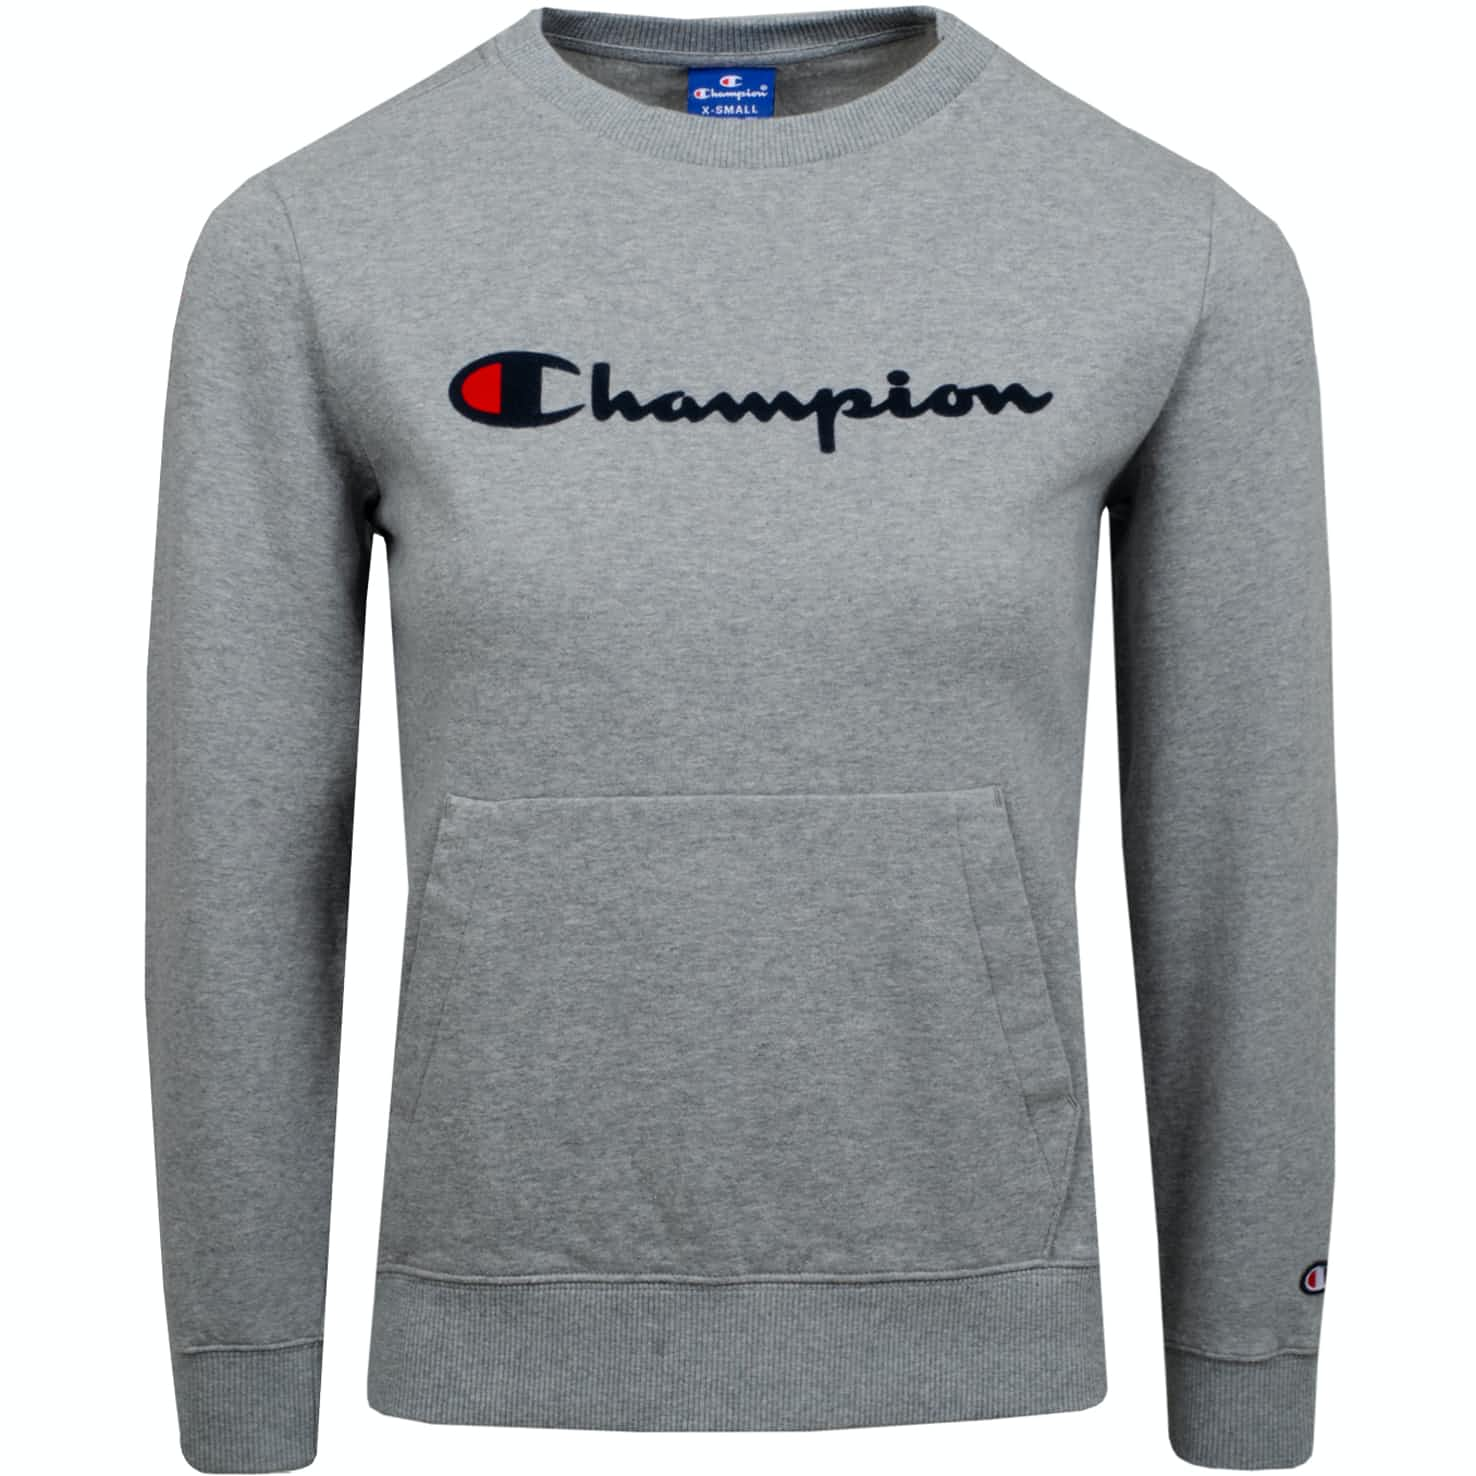 Womens Logo Crew Neck Sweatshirt Grey Melange